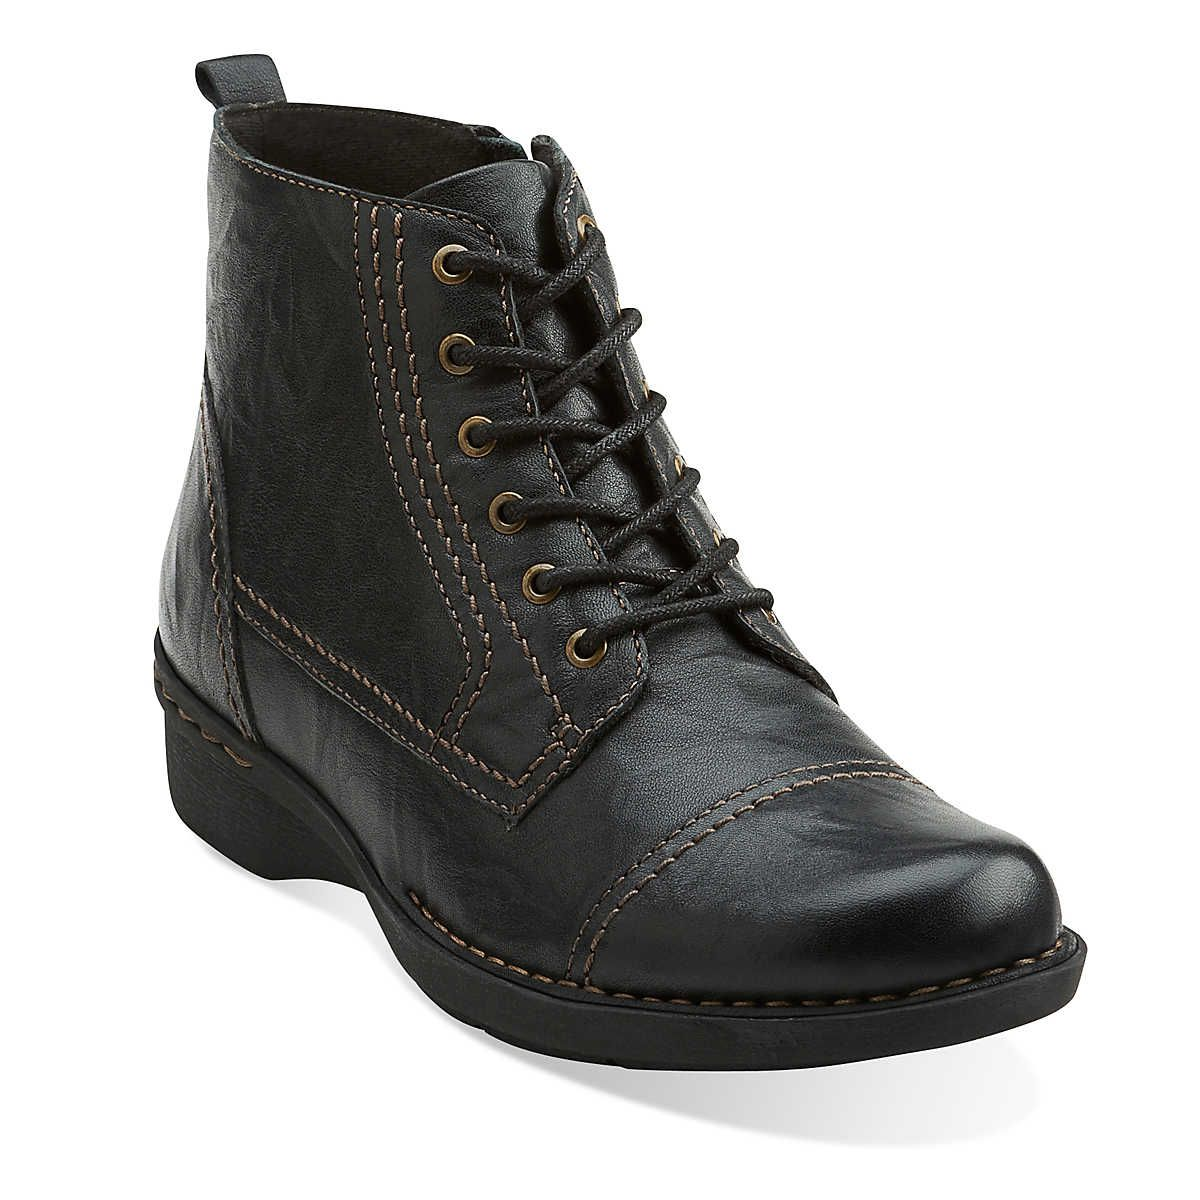 Whistle Vine in Black Leather - Womens Boots from Clarks